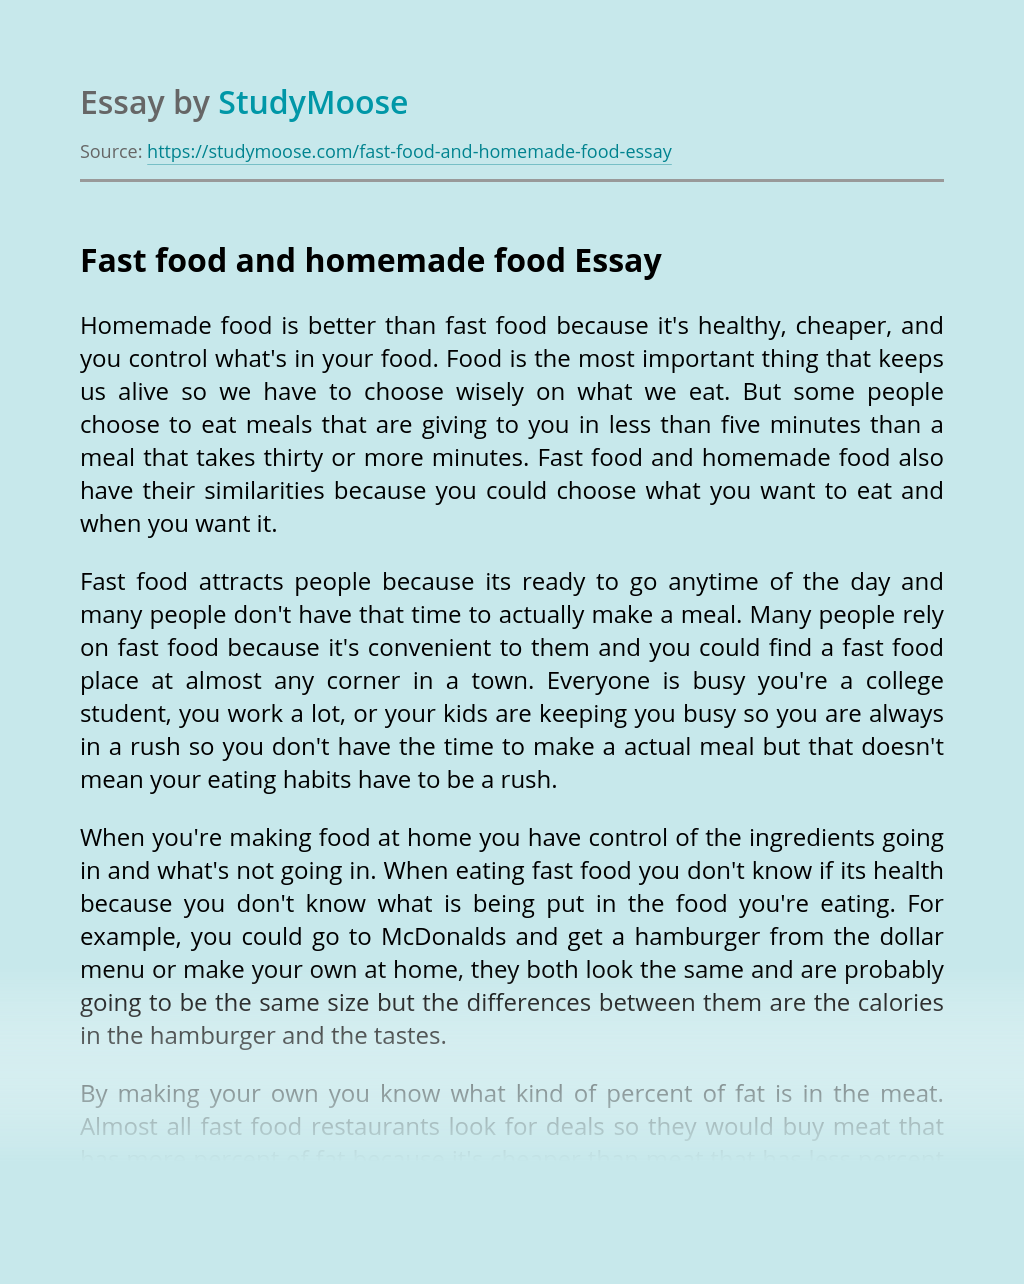 Fast food and homemade food